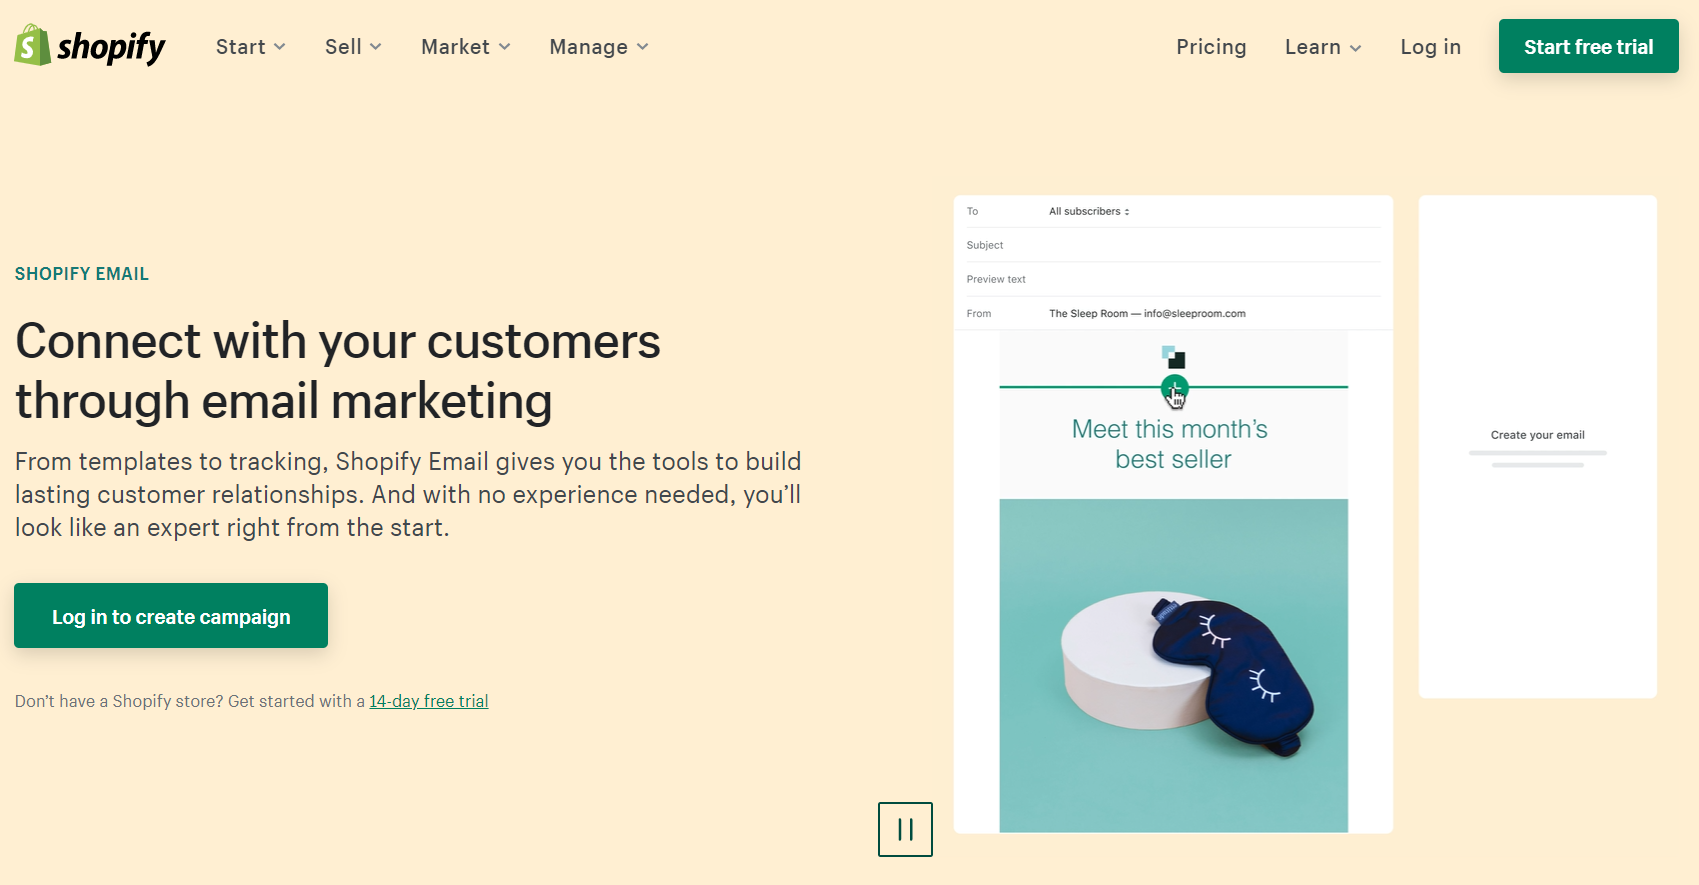 Shopify Email Shopify App